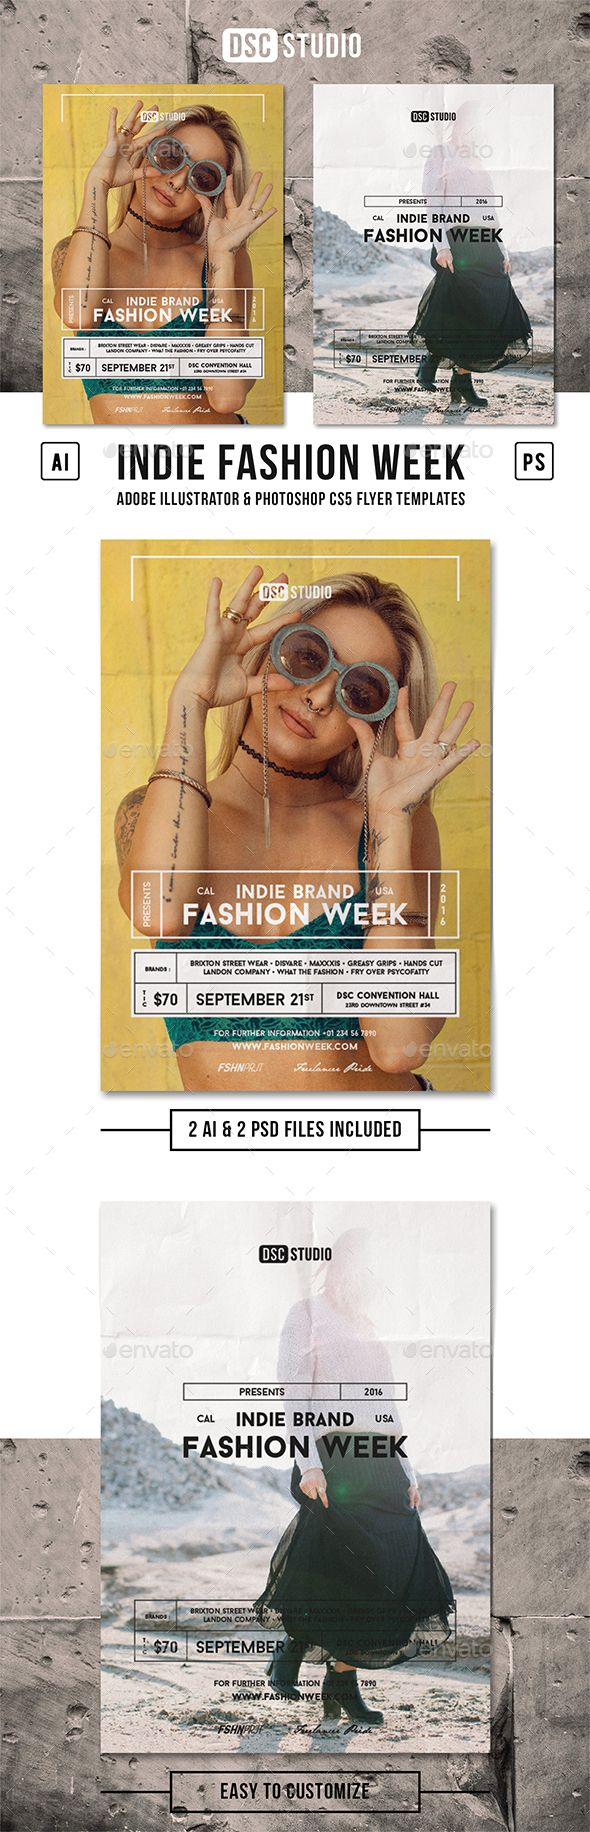 Fashion Week Indie Flyer — Photoshop PSD #stylist #poster • Available here → https://graphicriver.net/item/fashion-week-indie-flyer/17417598?ref=pxcr